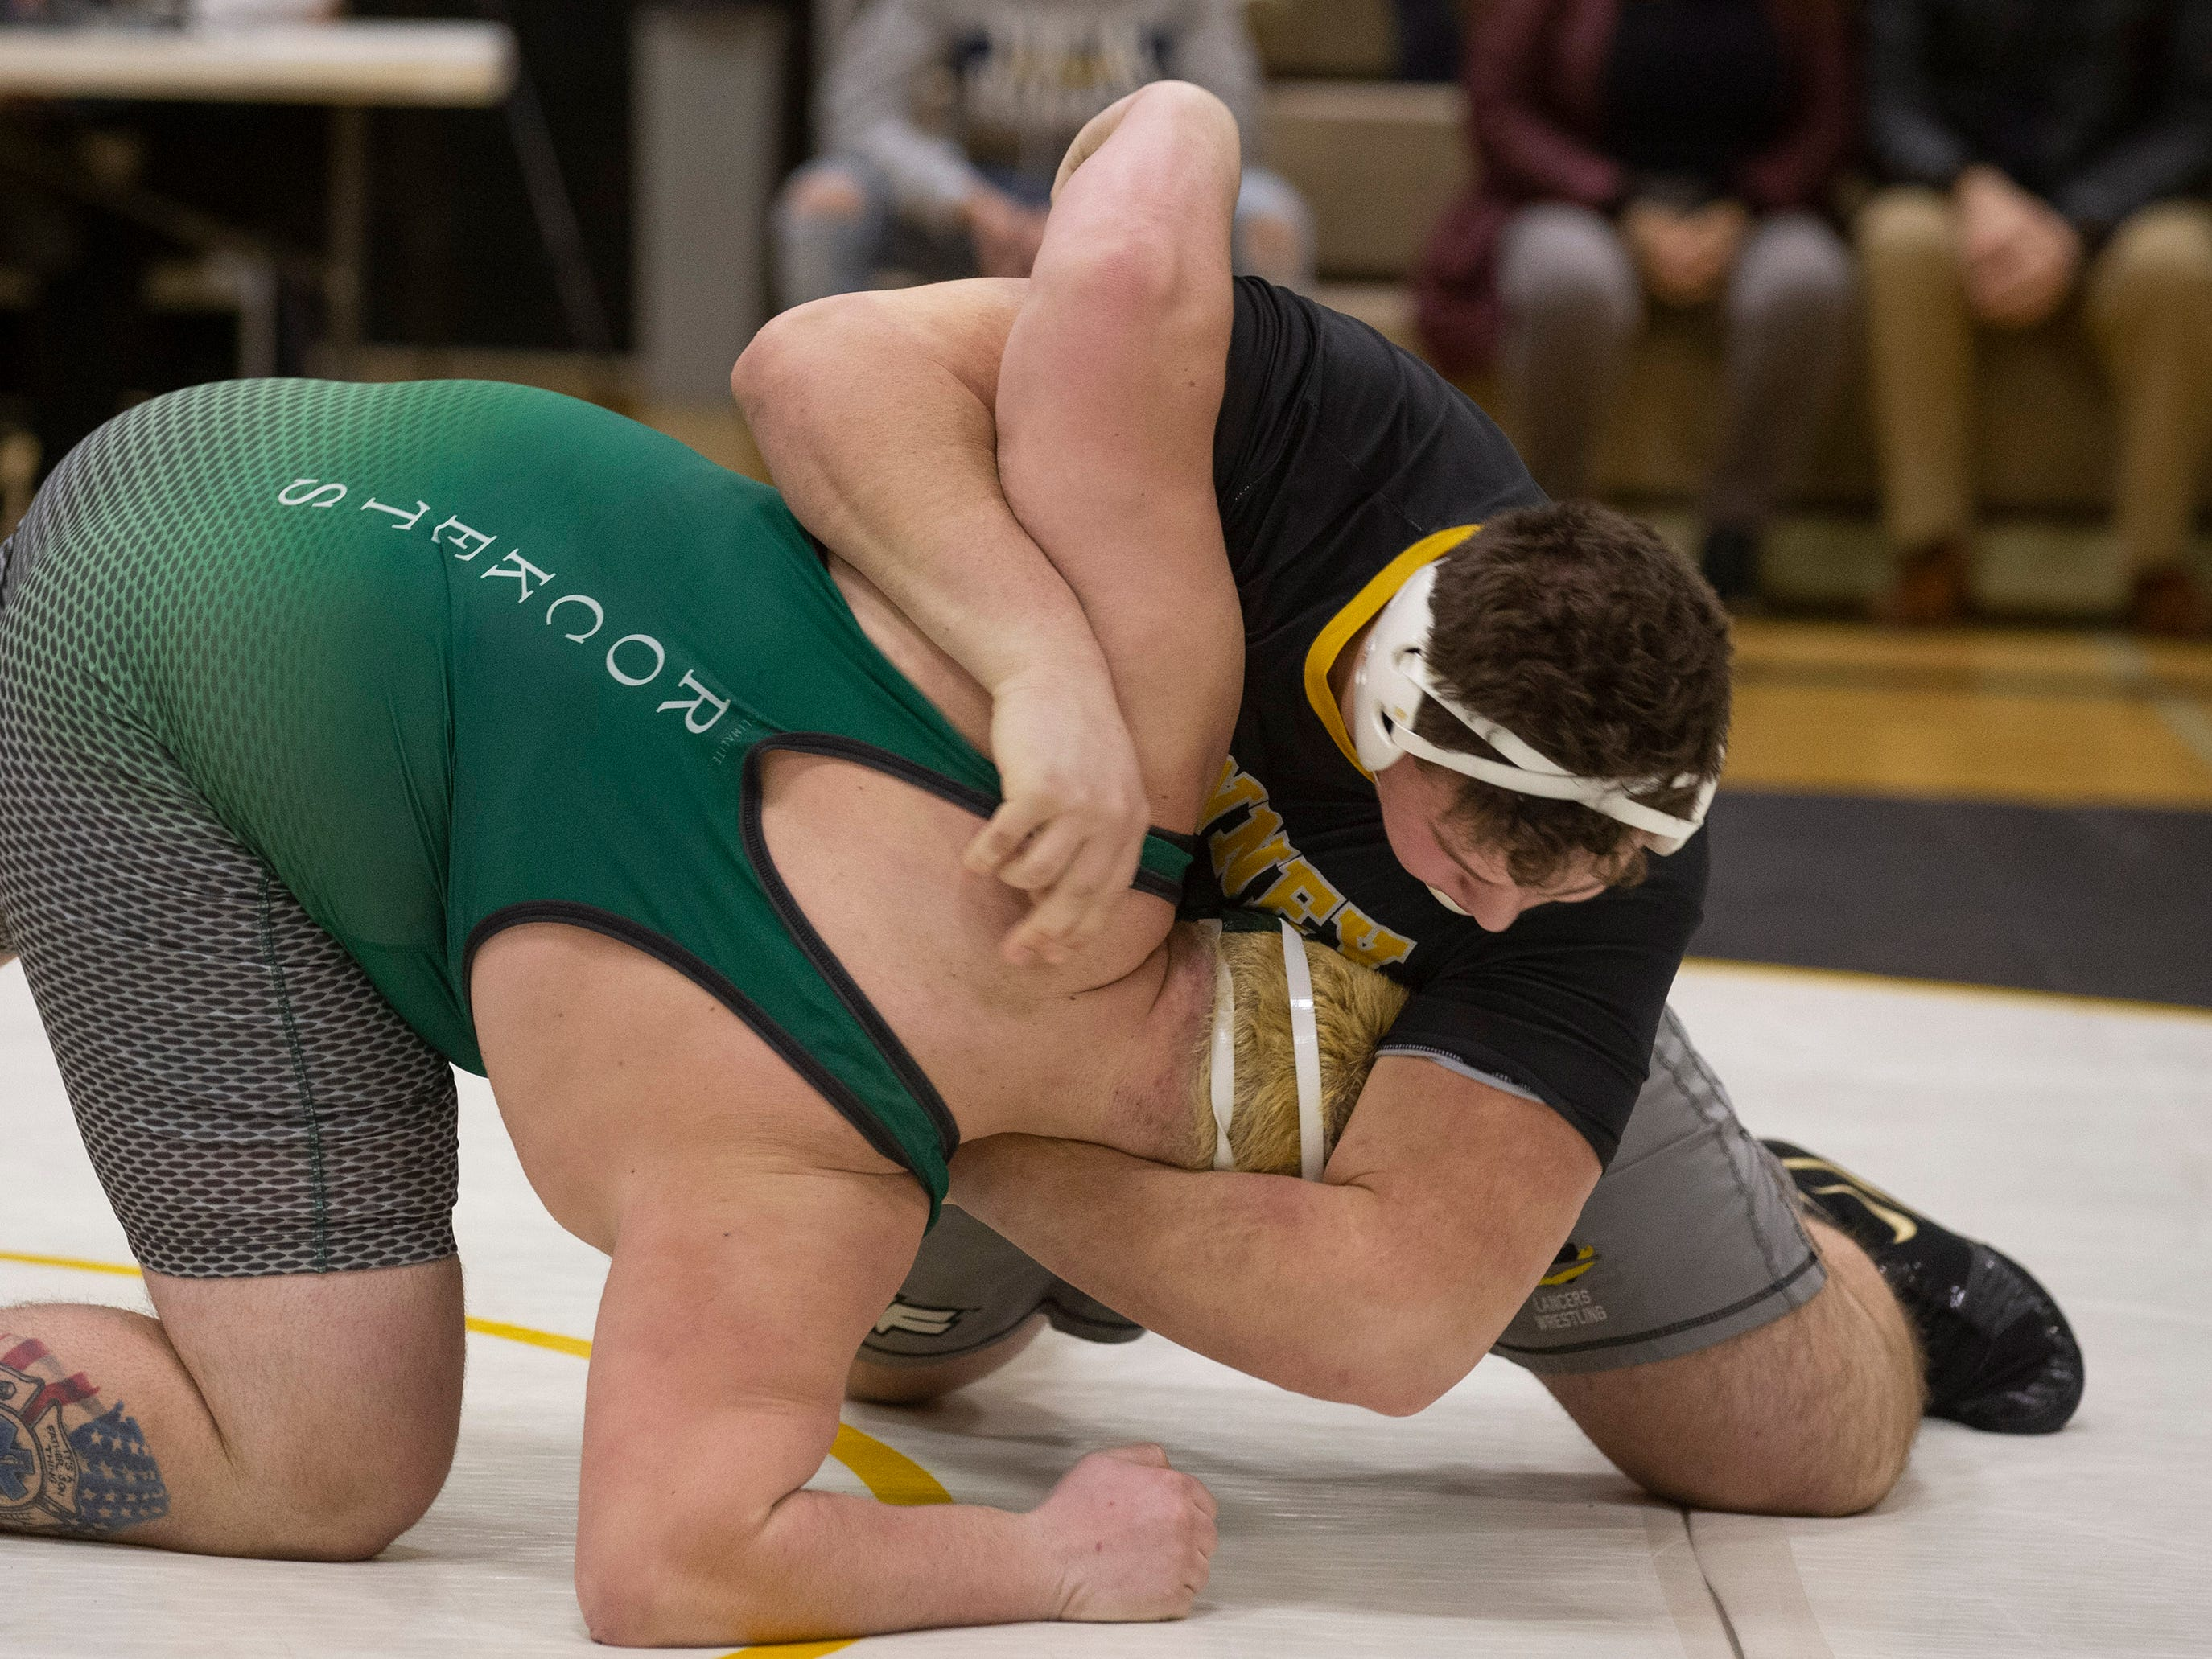 St John Vianney's Paul Liseno wins his 100th win with a quick pin of Raritan's Matt Spirko in their 285 lbs. bout. Raritan Wrestling defeats St John Vianney in Holmdel, NJ on January 23, 2019.